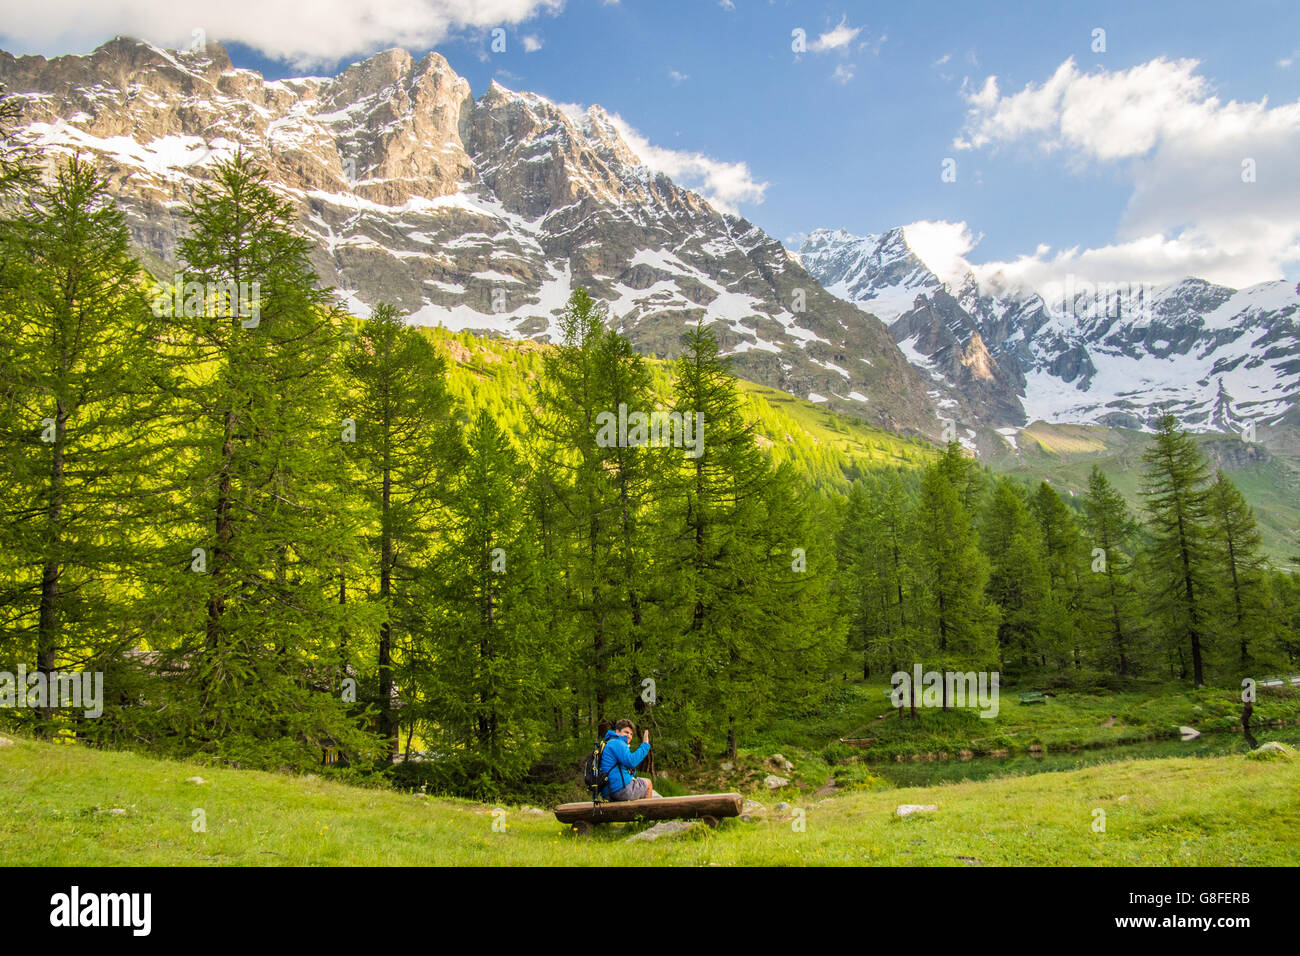 Lago Blu (Blue Lake) in the Aosta Valley, Italy. - Stock Image